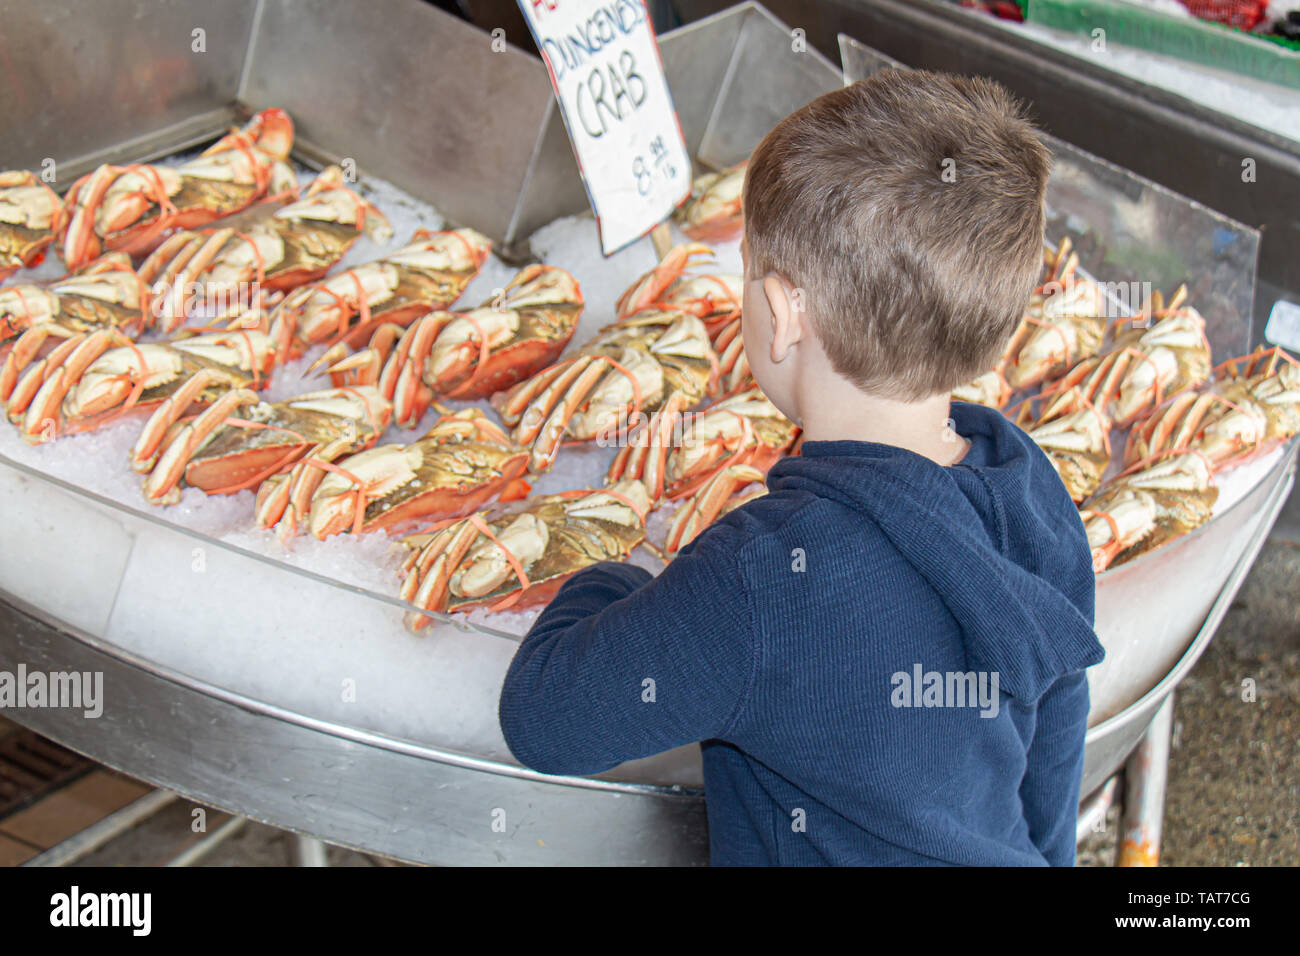 A young boy looks at Dungeness crab for sale at a fish market in Seattle, Washington. - Stock Image